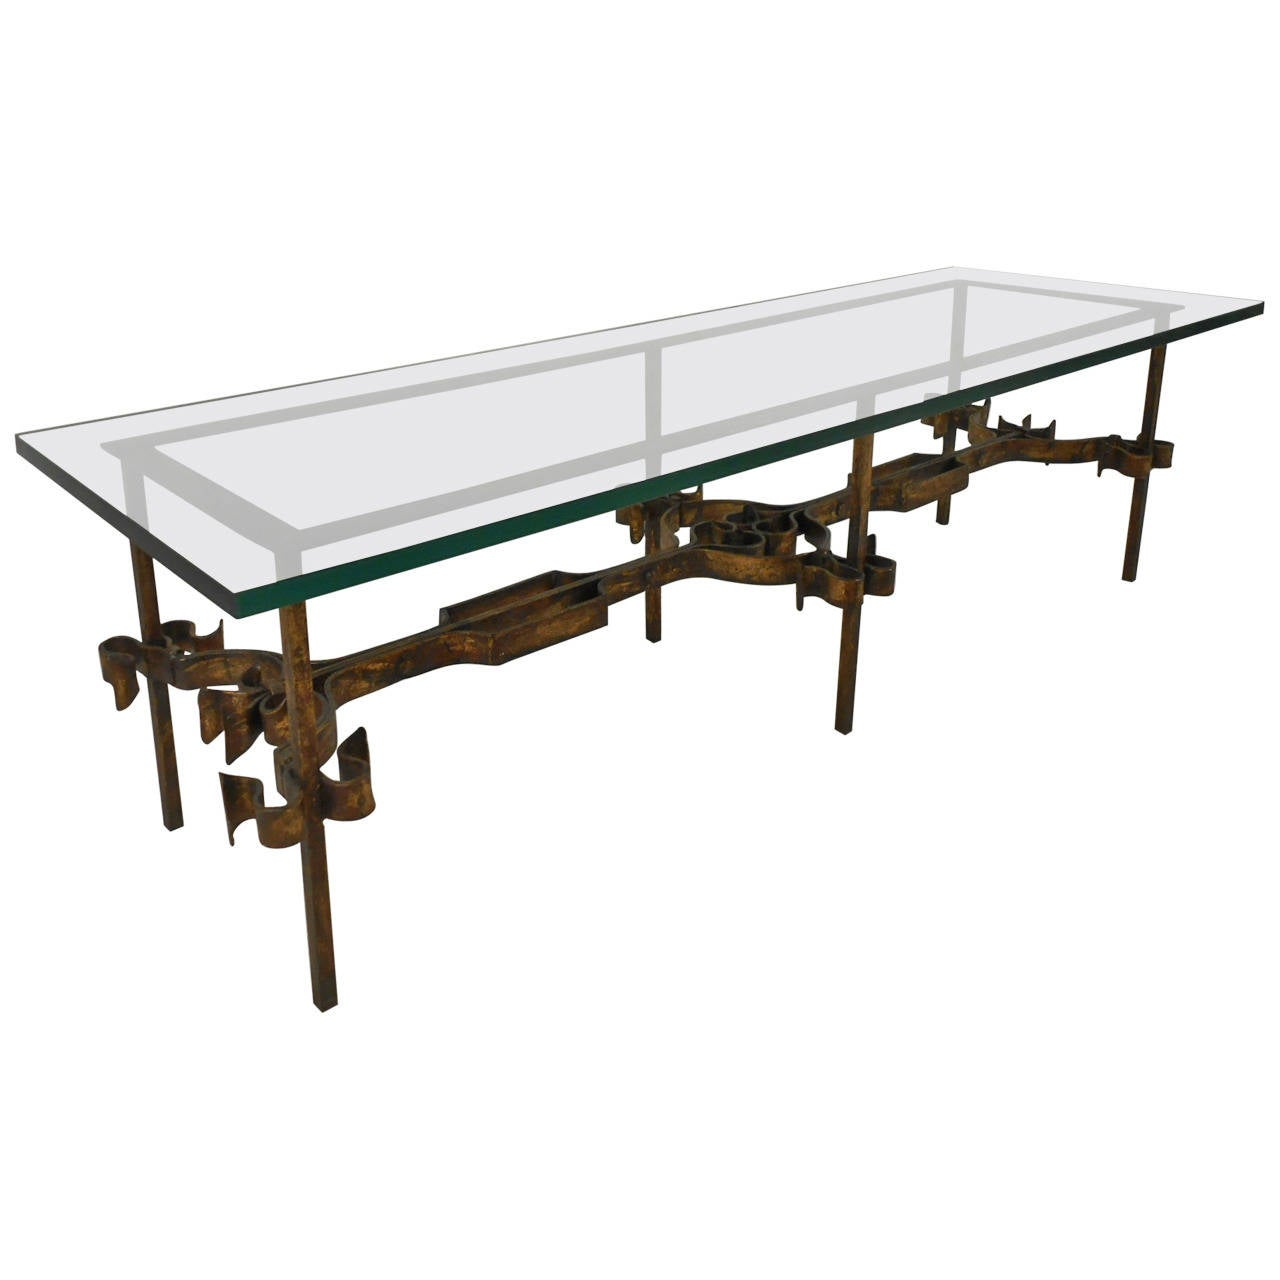 Decorative Iron And Glass Coffee Table For Sale At 1stdibs